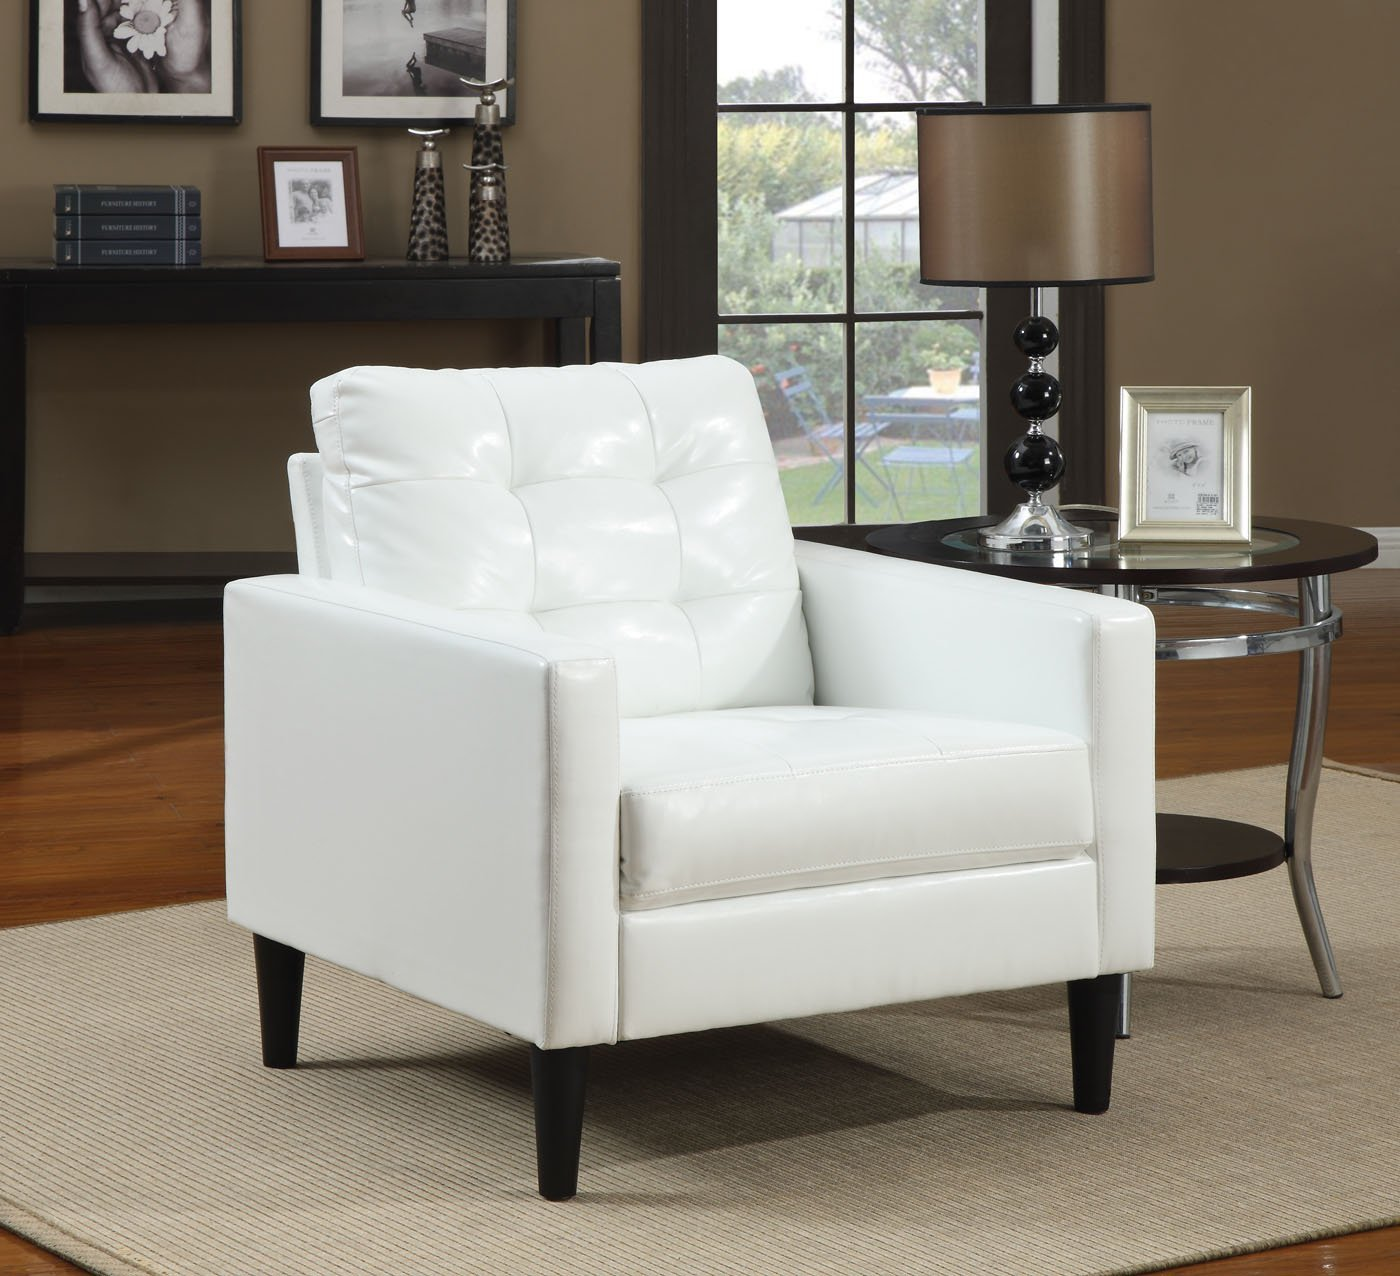 ACME Balin White Faux Leather Accent Chair - Balin collection accent chair Made of polyurethane, foam, solid wood, ply Some assembly may be required - living-room-furniture, living-room, accent-chairs - 71VU3 NW04L -